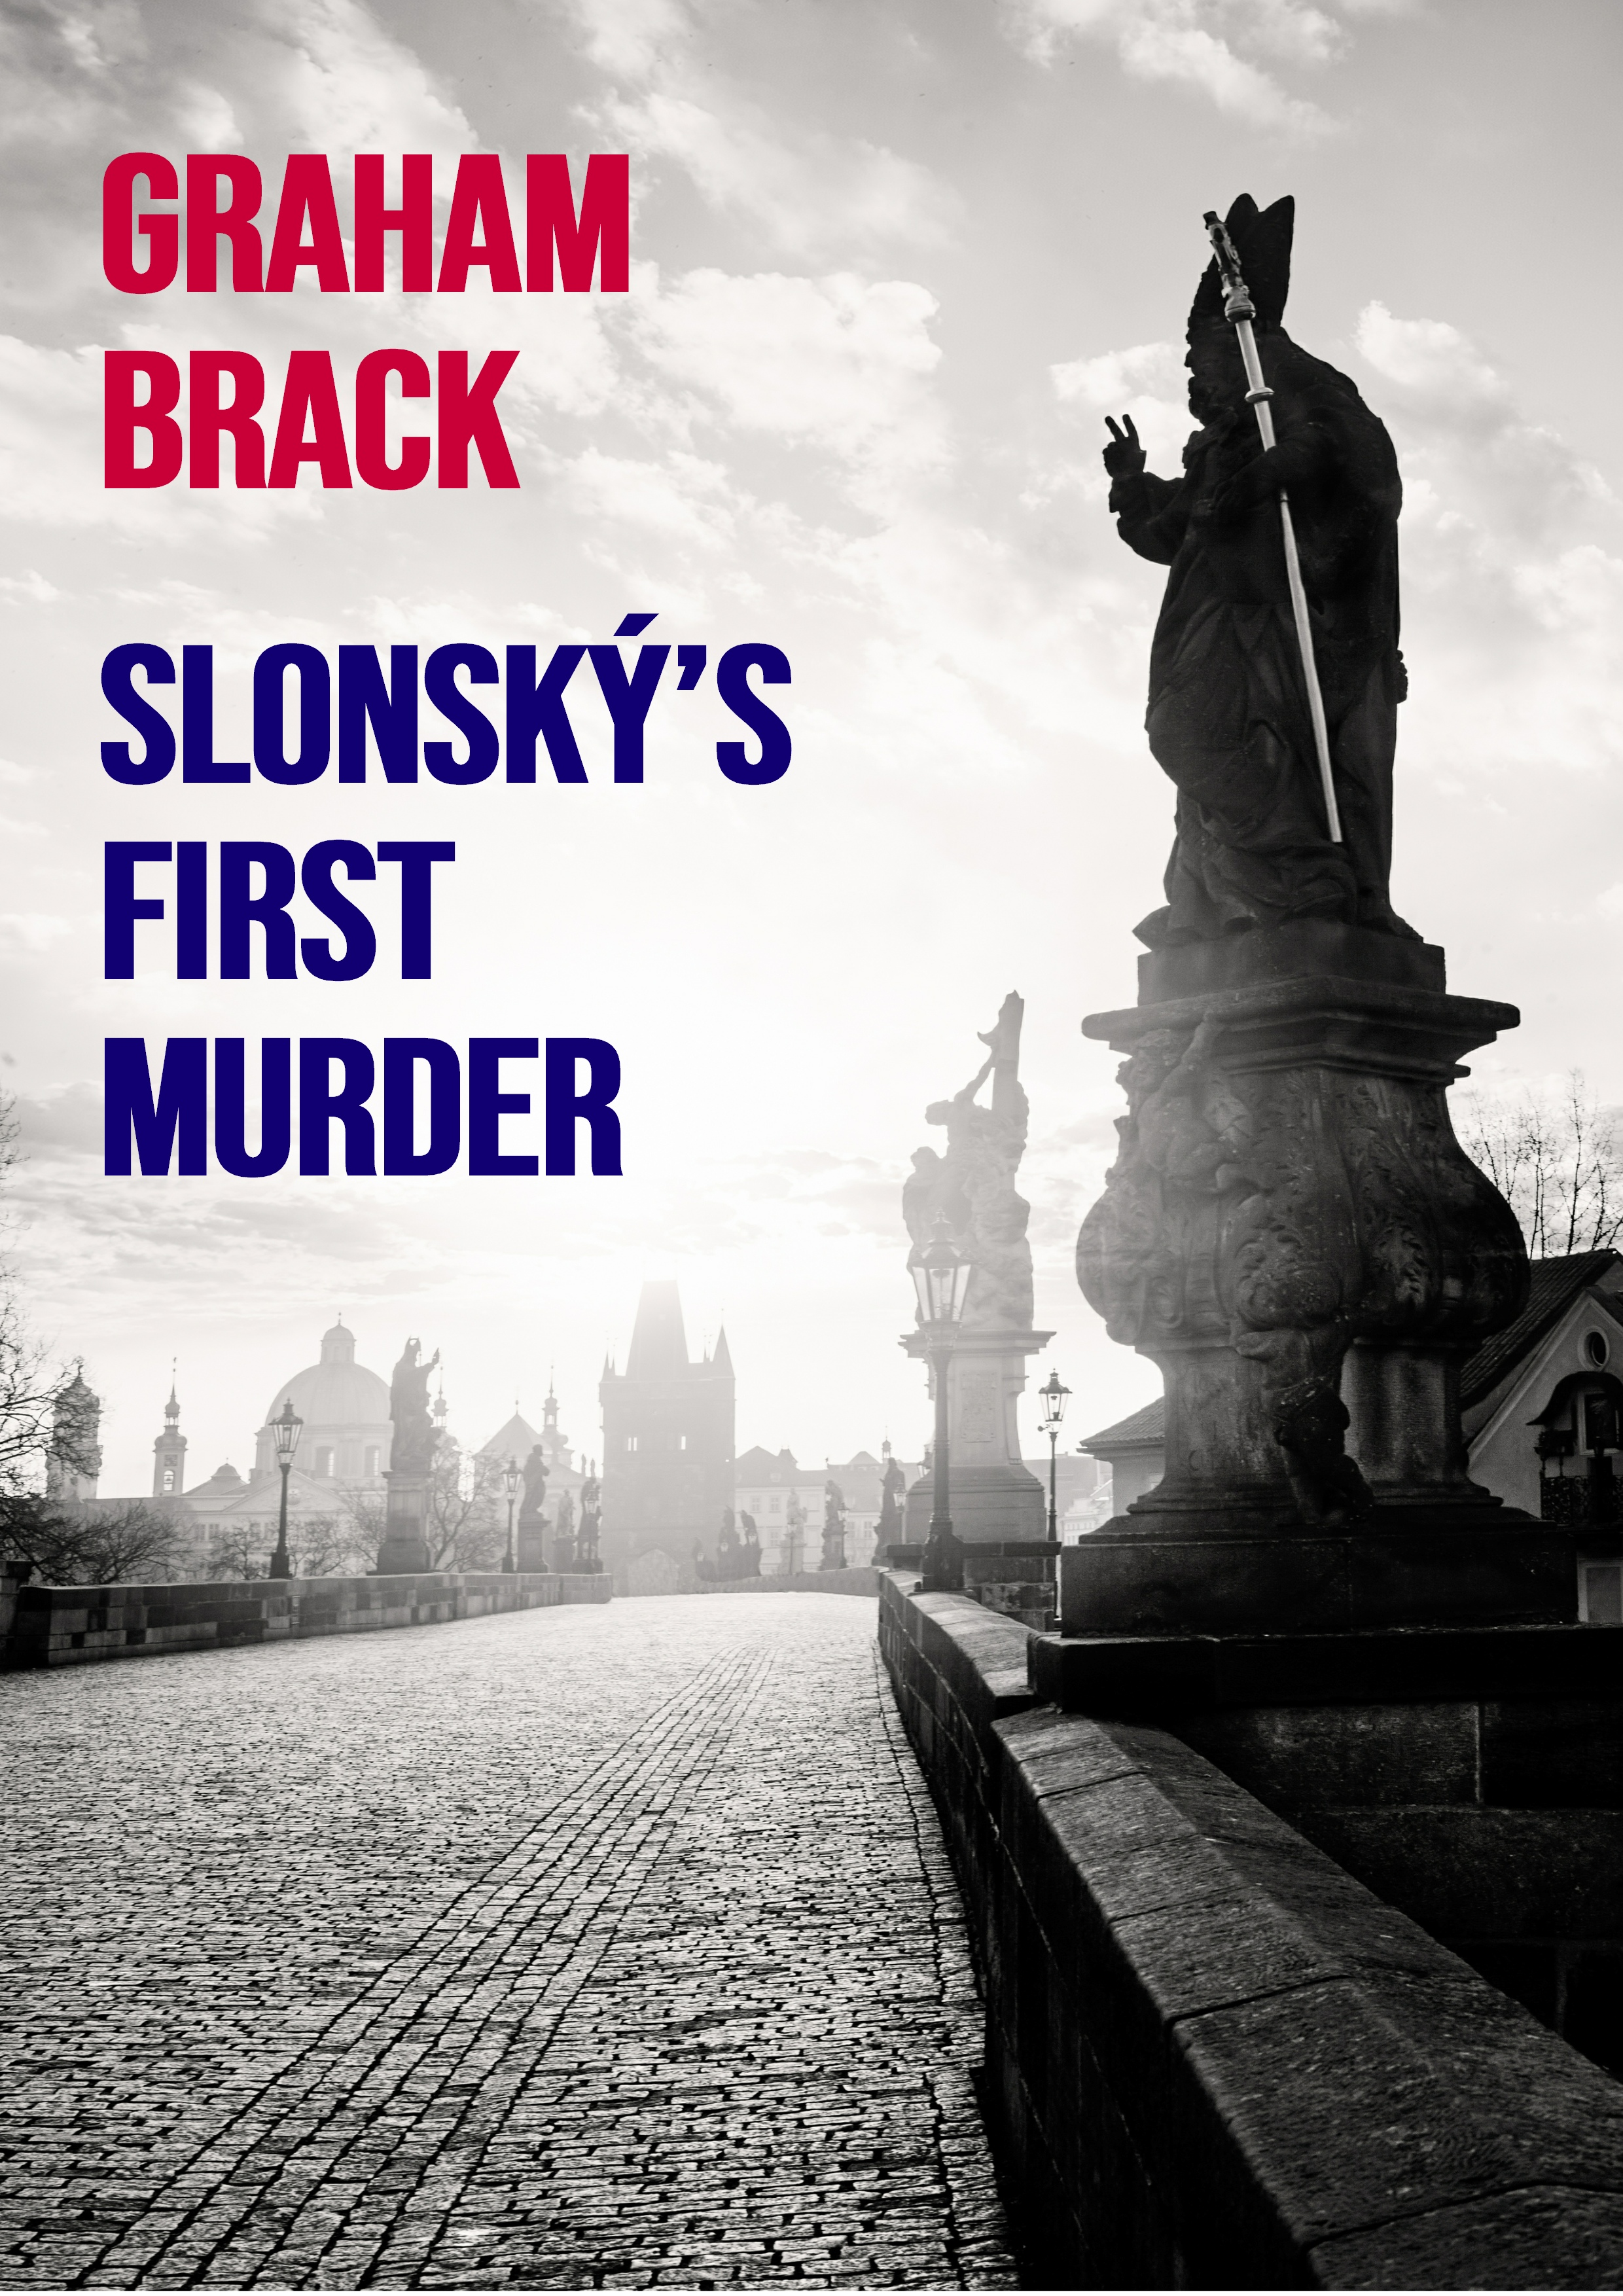 Slonsky's First Murder